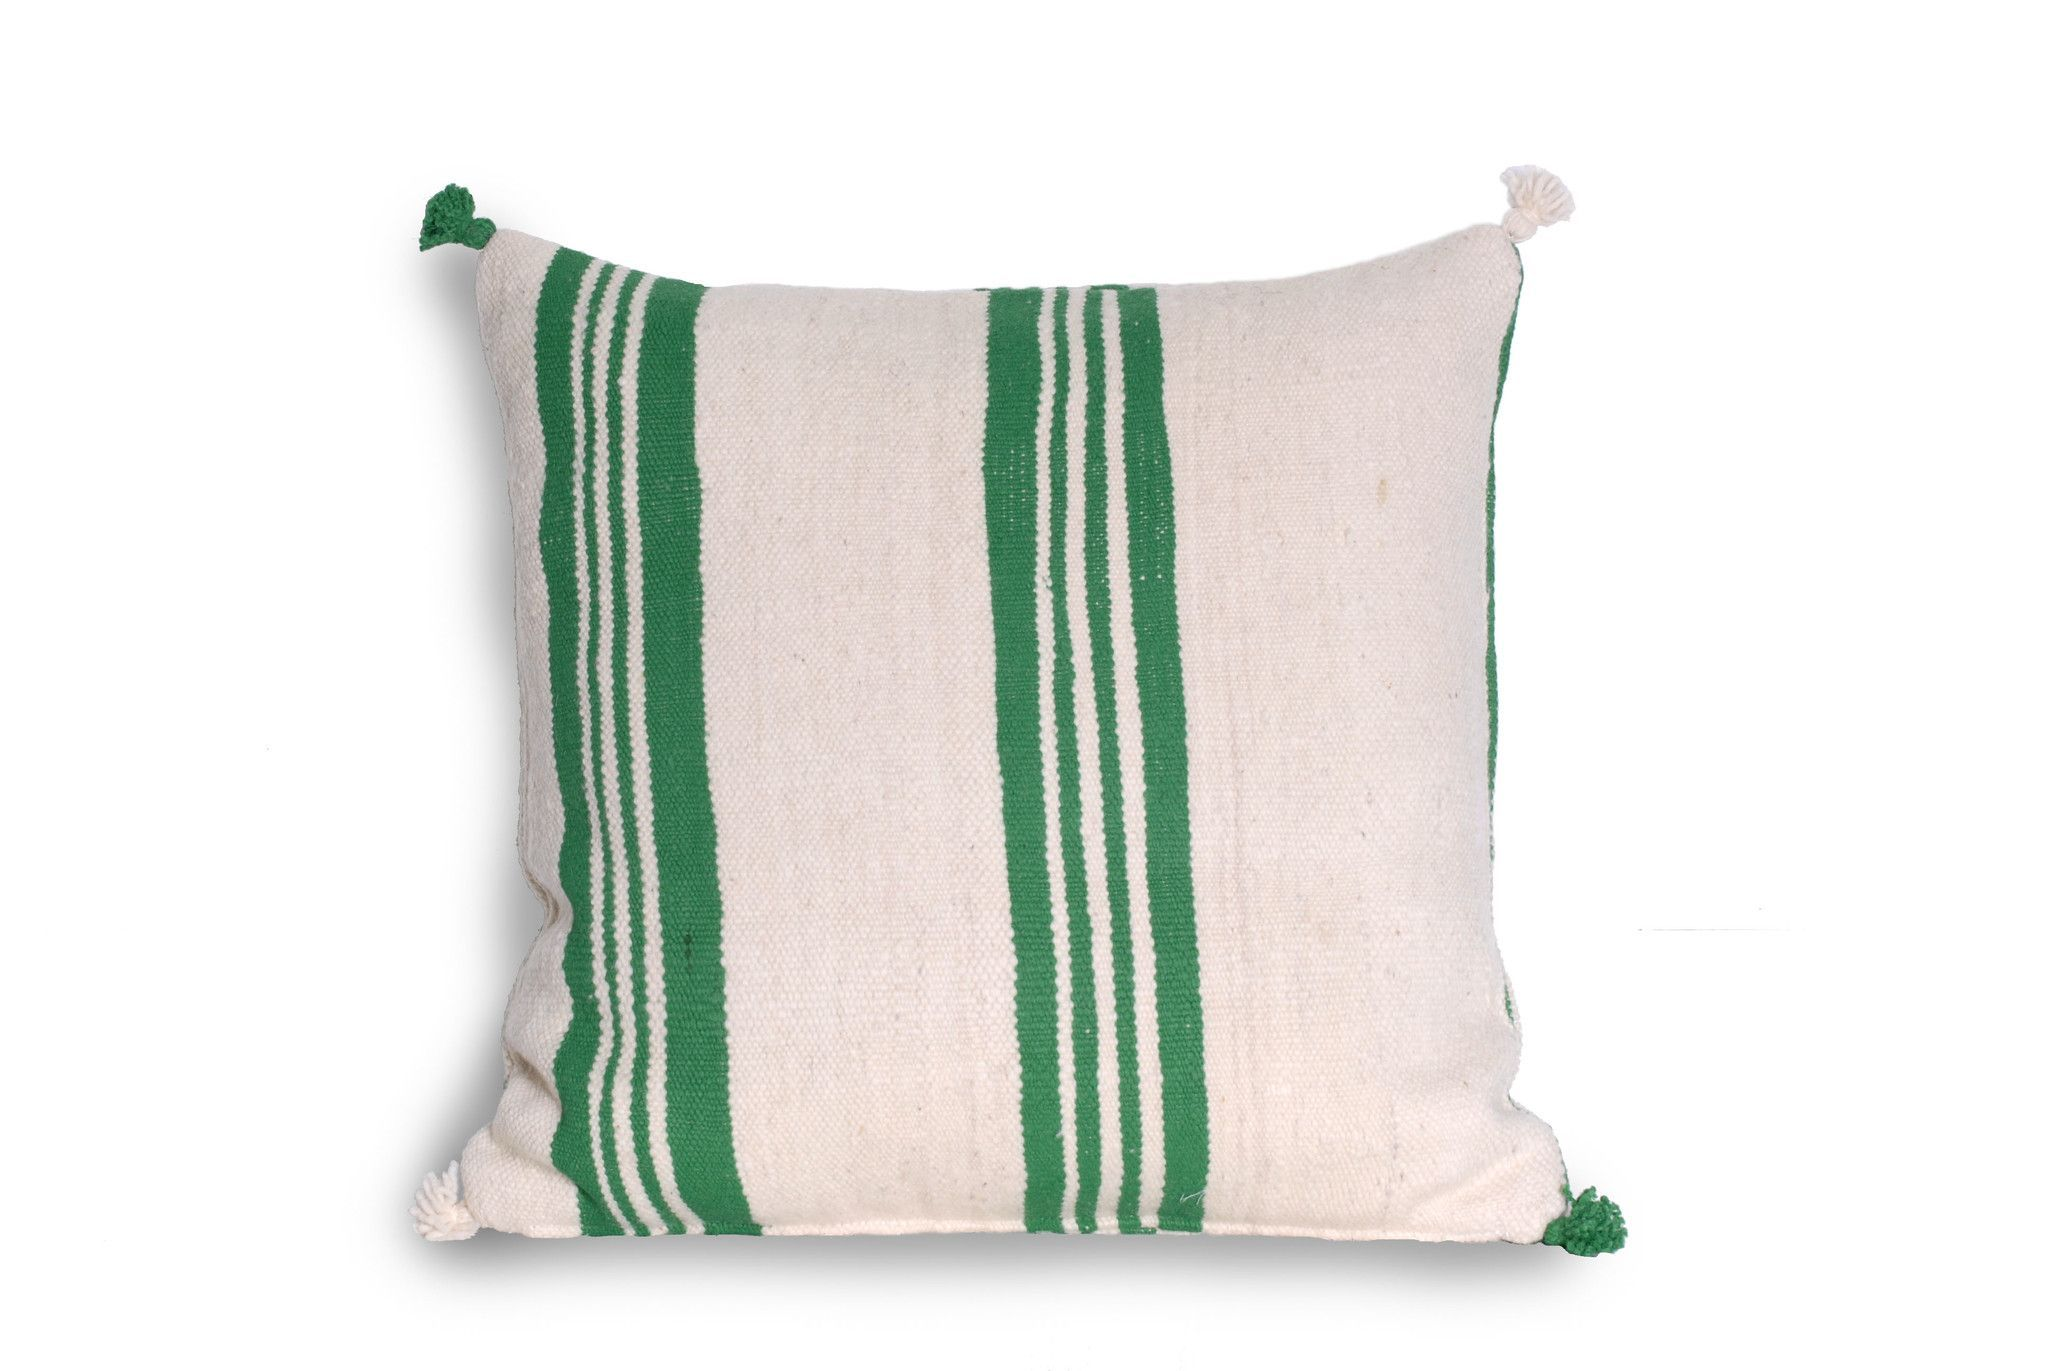 Batania cushion cover cb products pinterest products